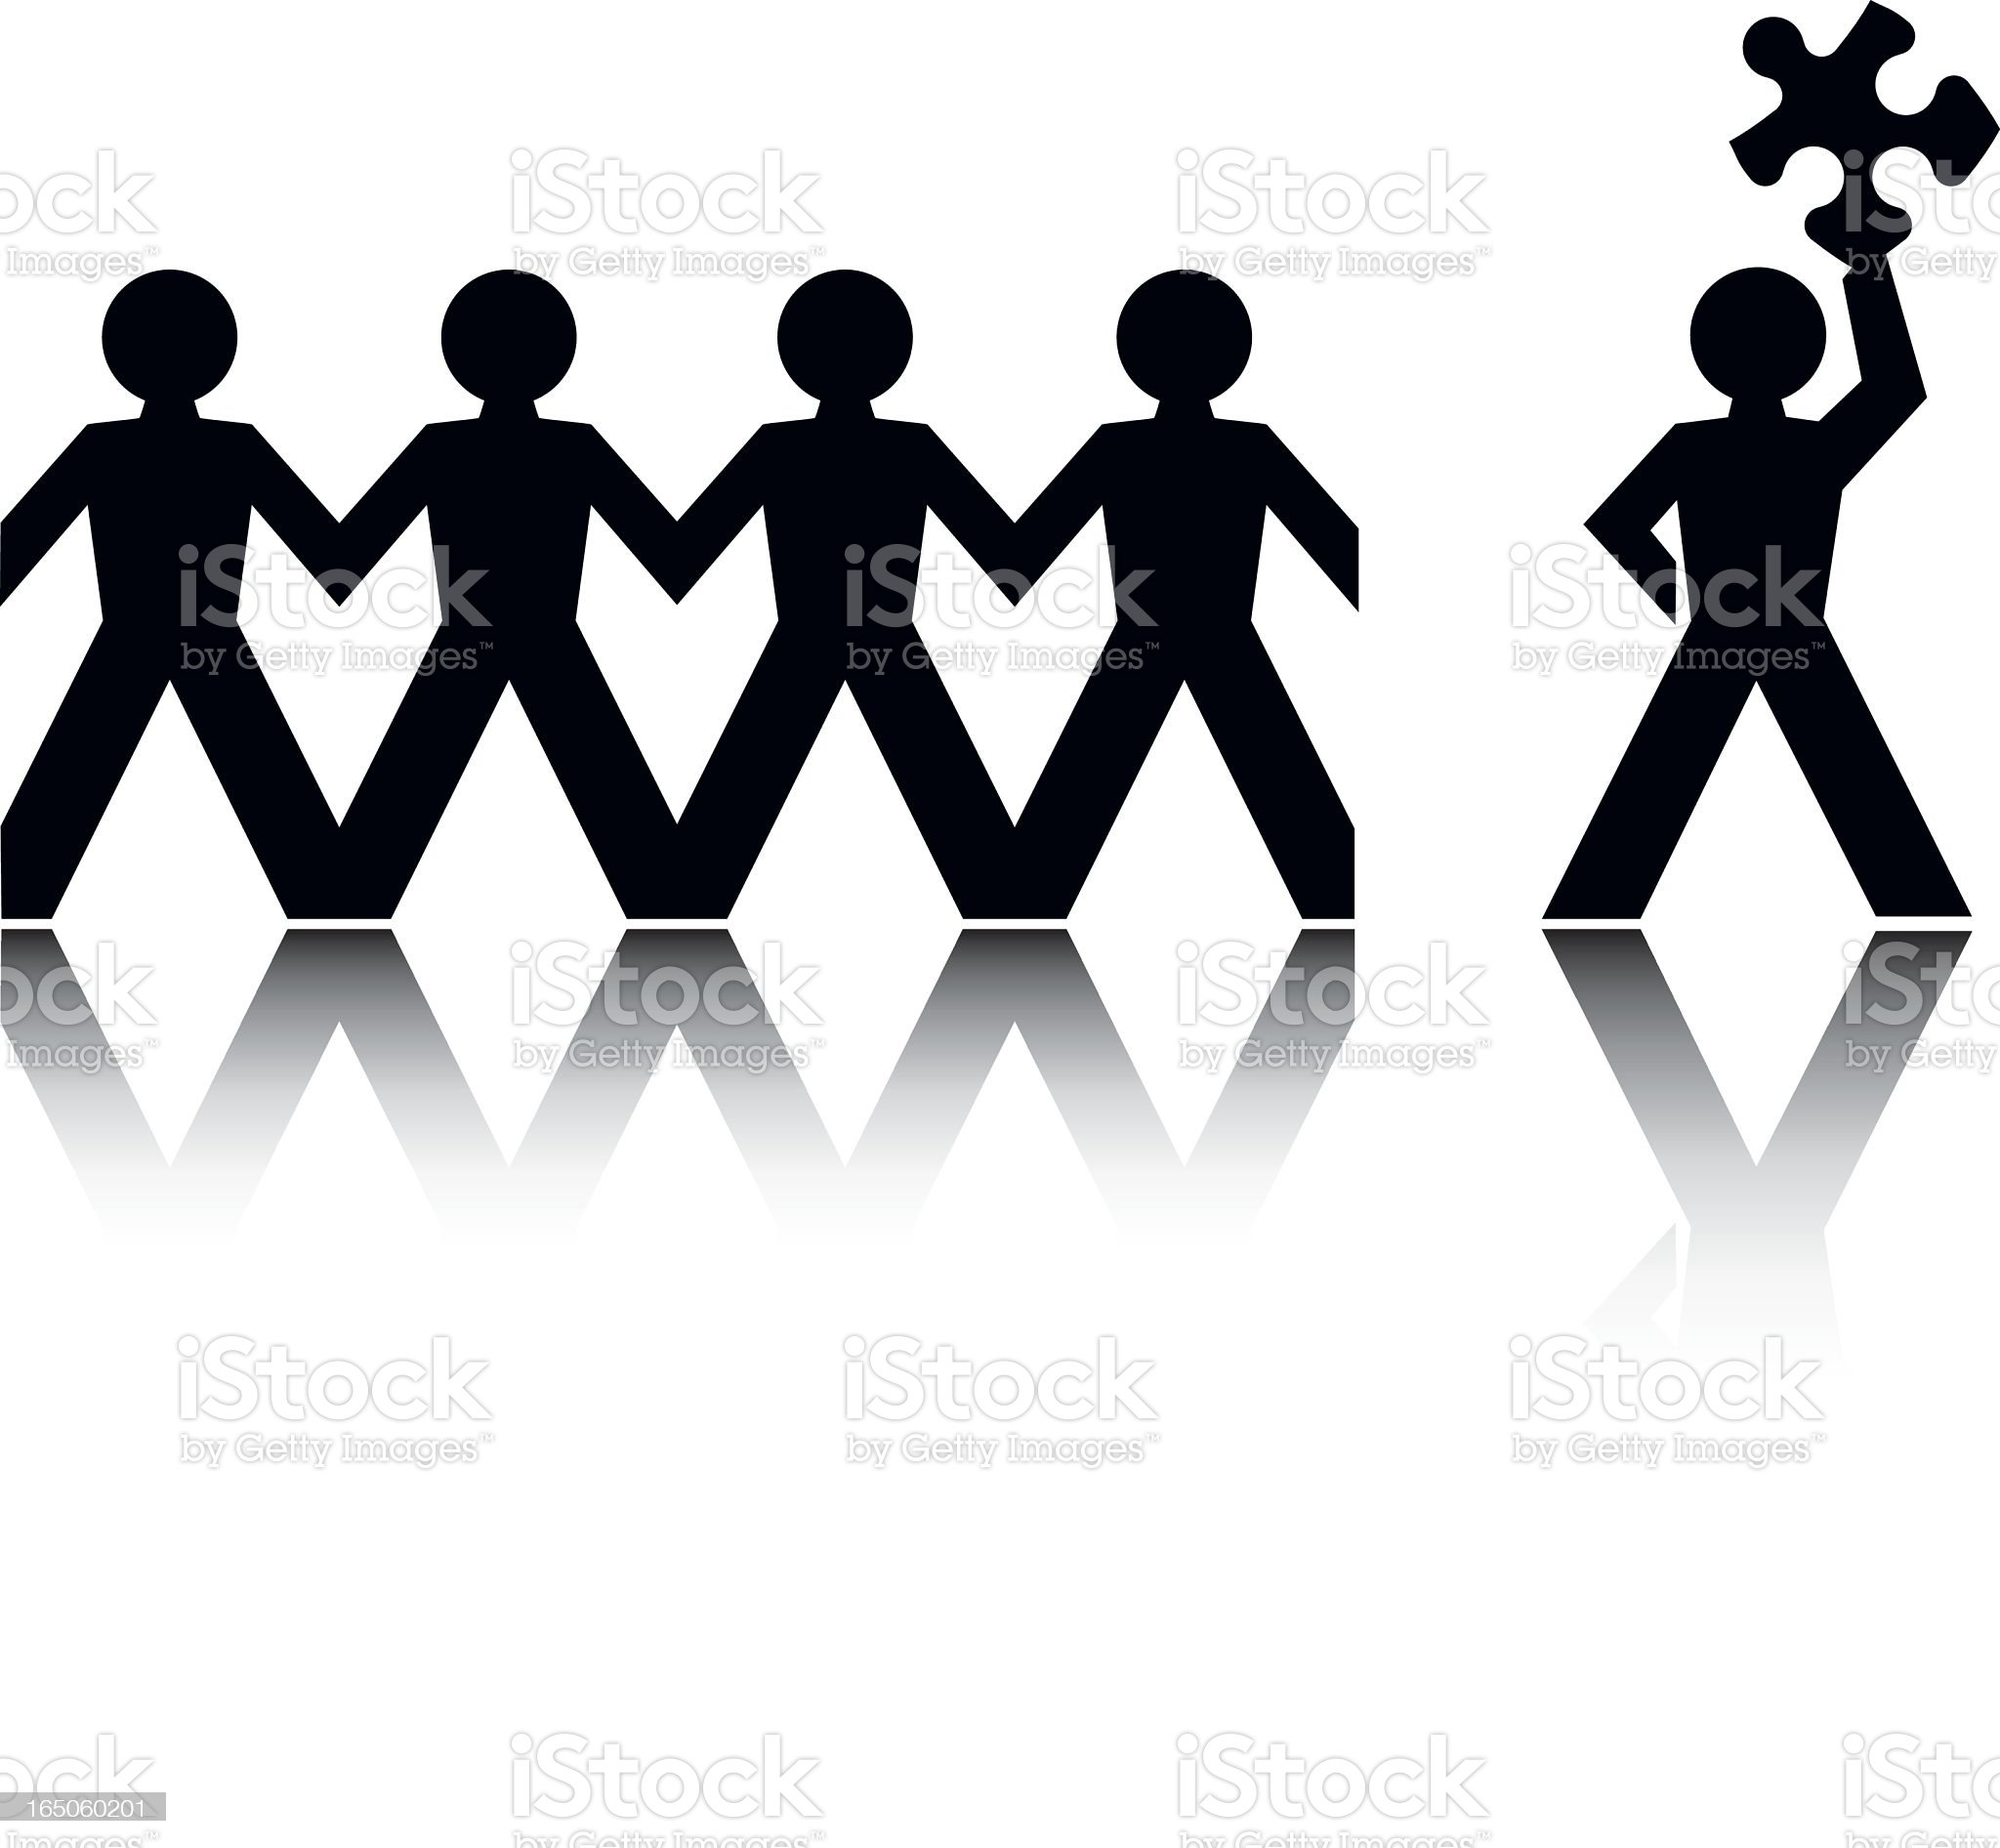 Paper cutout people with one holding a puzzle piece royalty-free stock vector art